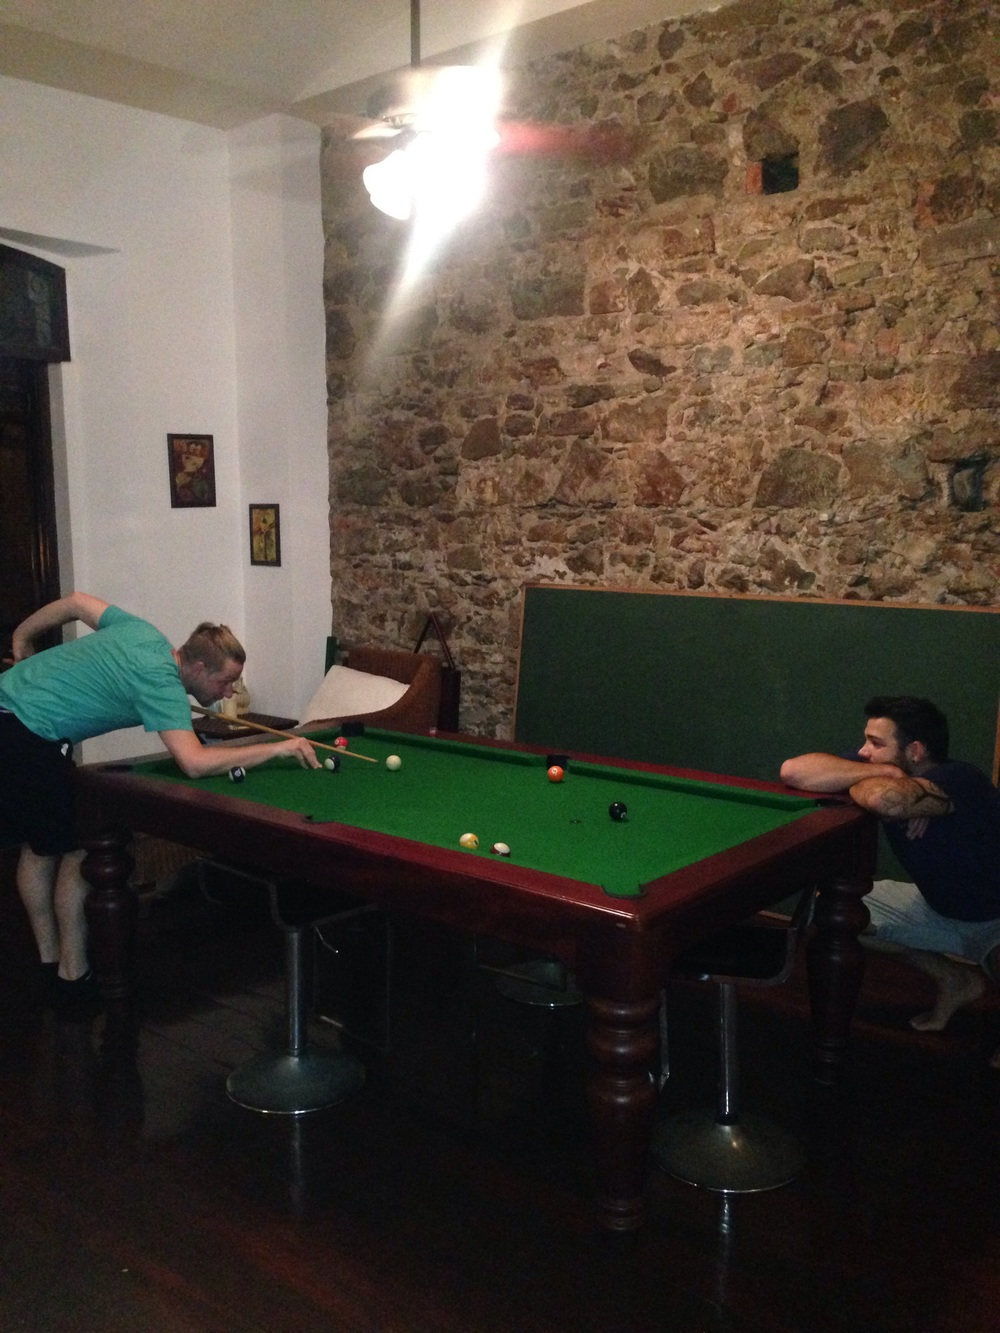 Our airbnb also had a pool table so Alex and Ben had some guy time.